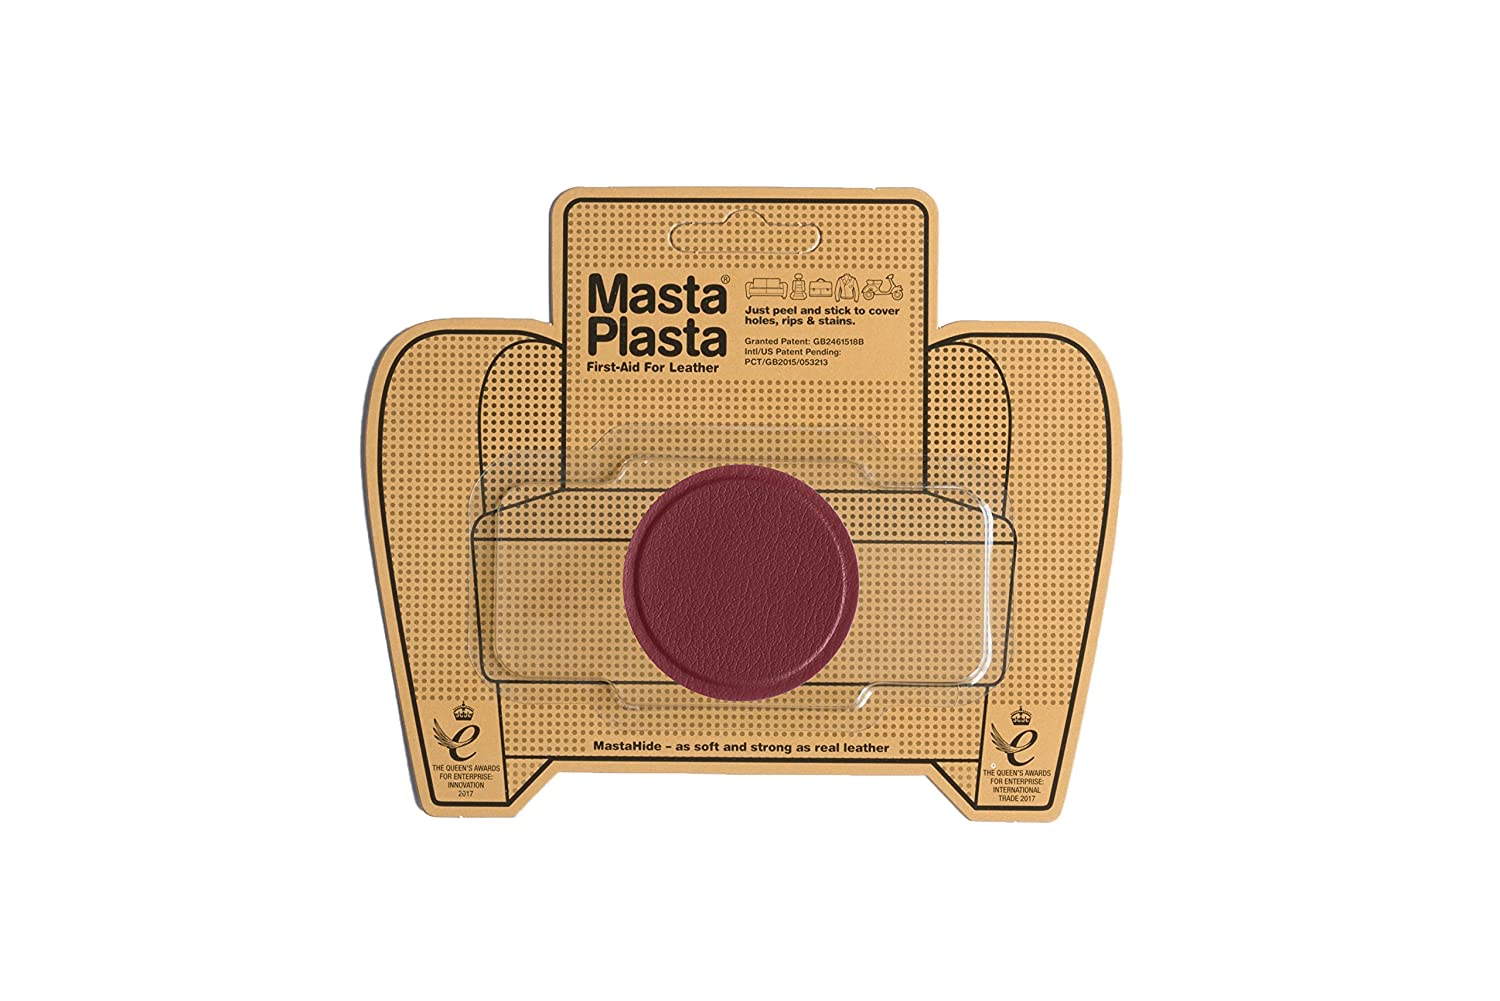 Red MastaPlasta Self-Adhesive Leather Repair Patches. Choose size/design. First-aid for sofas, car seats, handbags, jackets etc (RED SMALL CIRCLE 5cmx5cm) MastaPlasta Ltd UKMPCRLRED